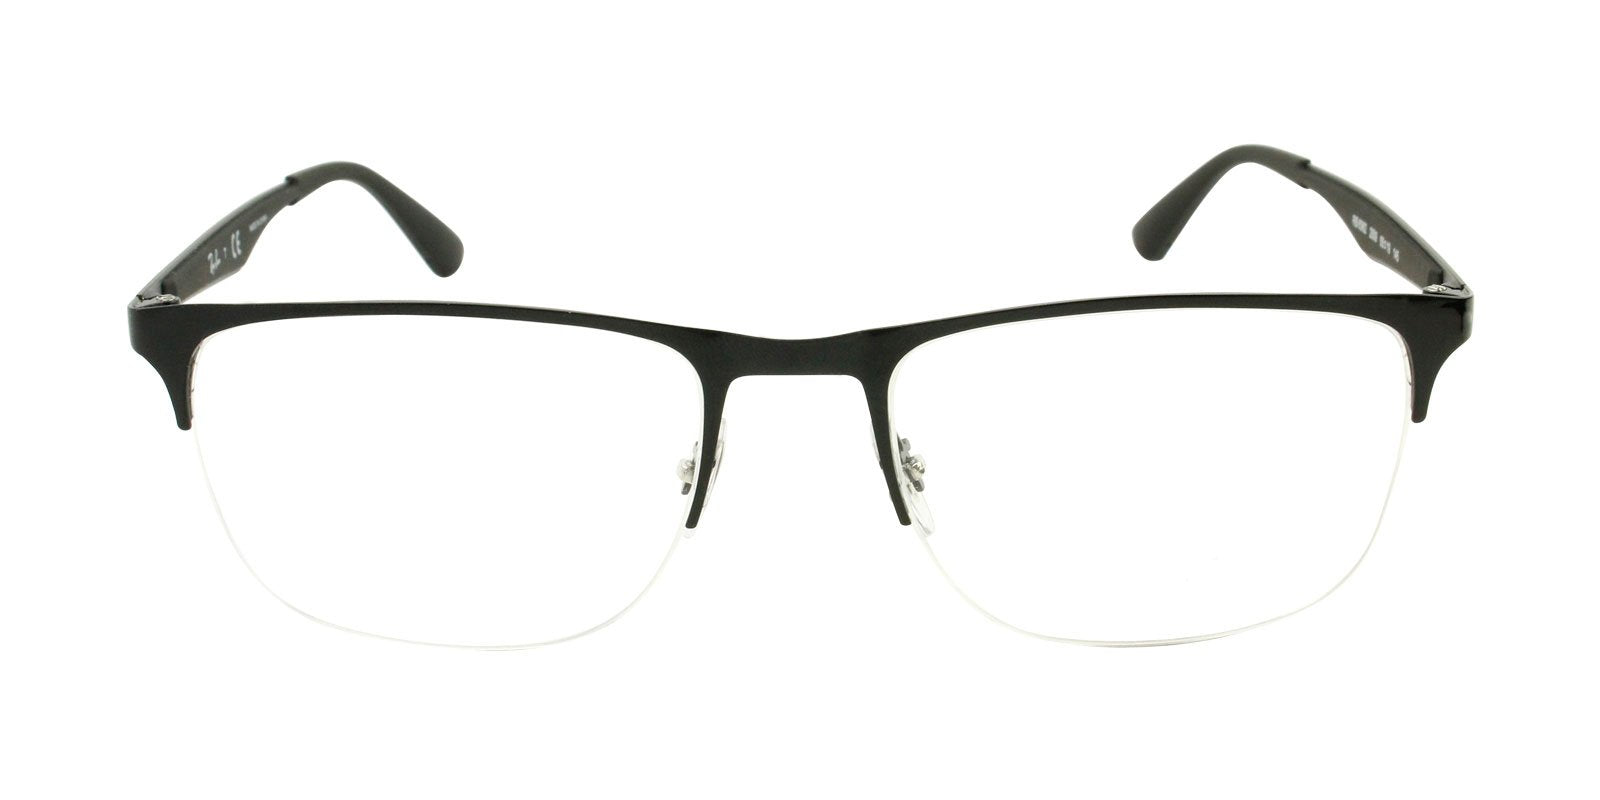 Ray Ban Rx - RX6362 Black Semi-Rimless Unisex Eyeglasses - 55mm-Eyeglasses-Designer Eyes